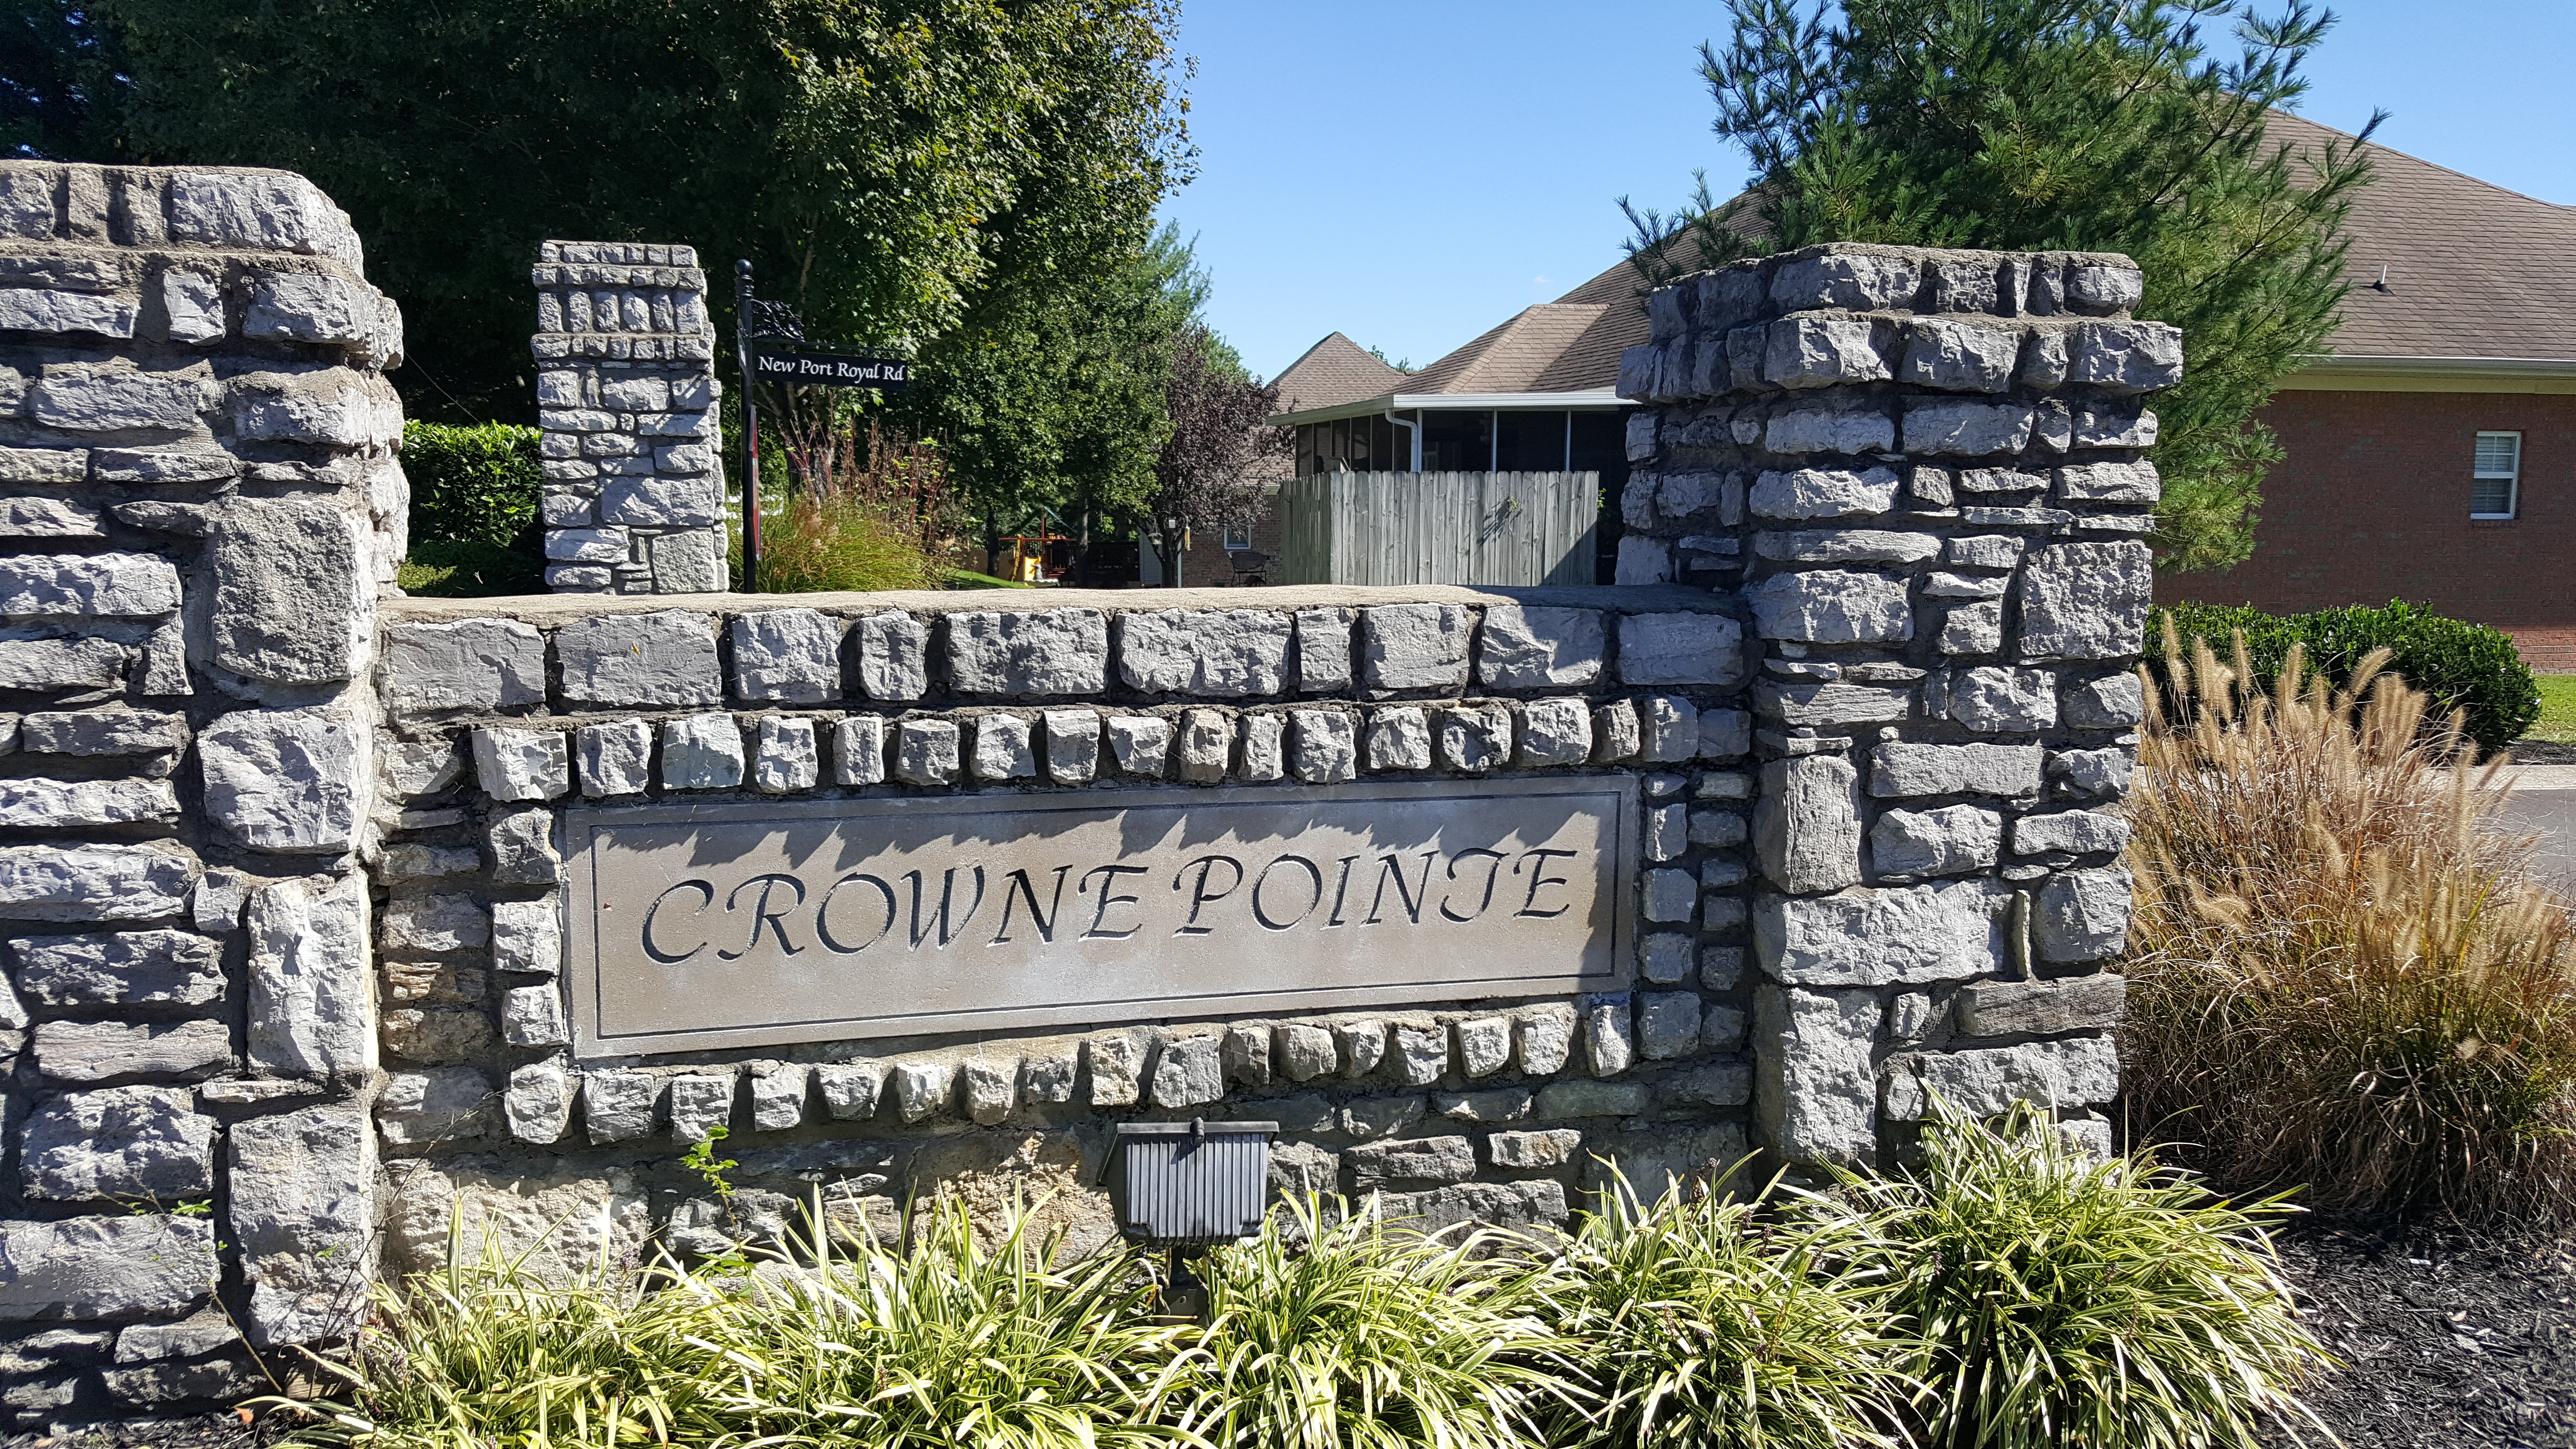 Crowne Pointe subdivision in Thompson's Station homes for sale